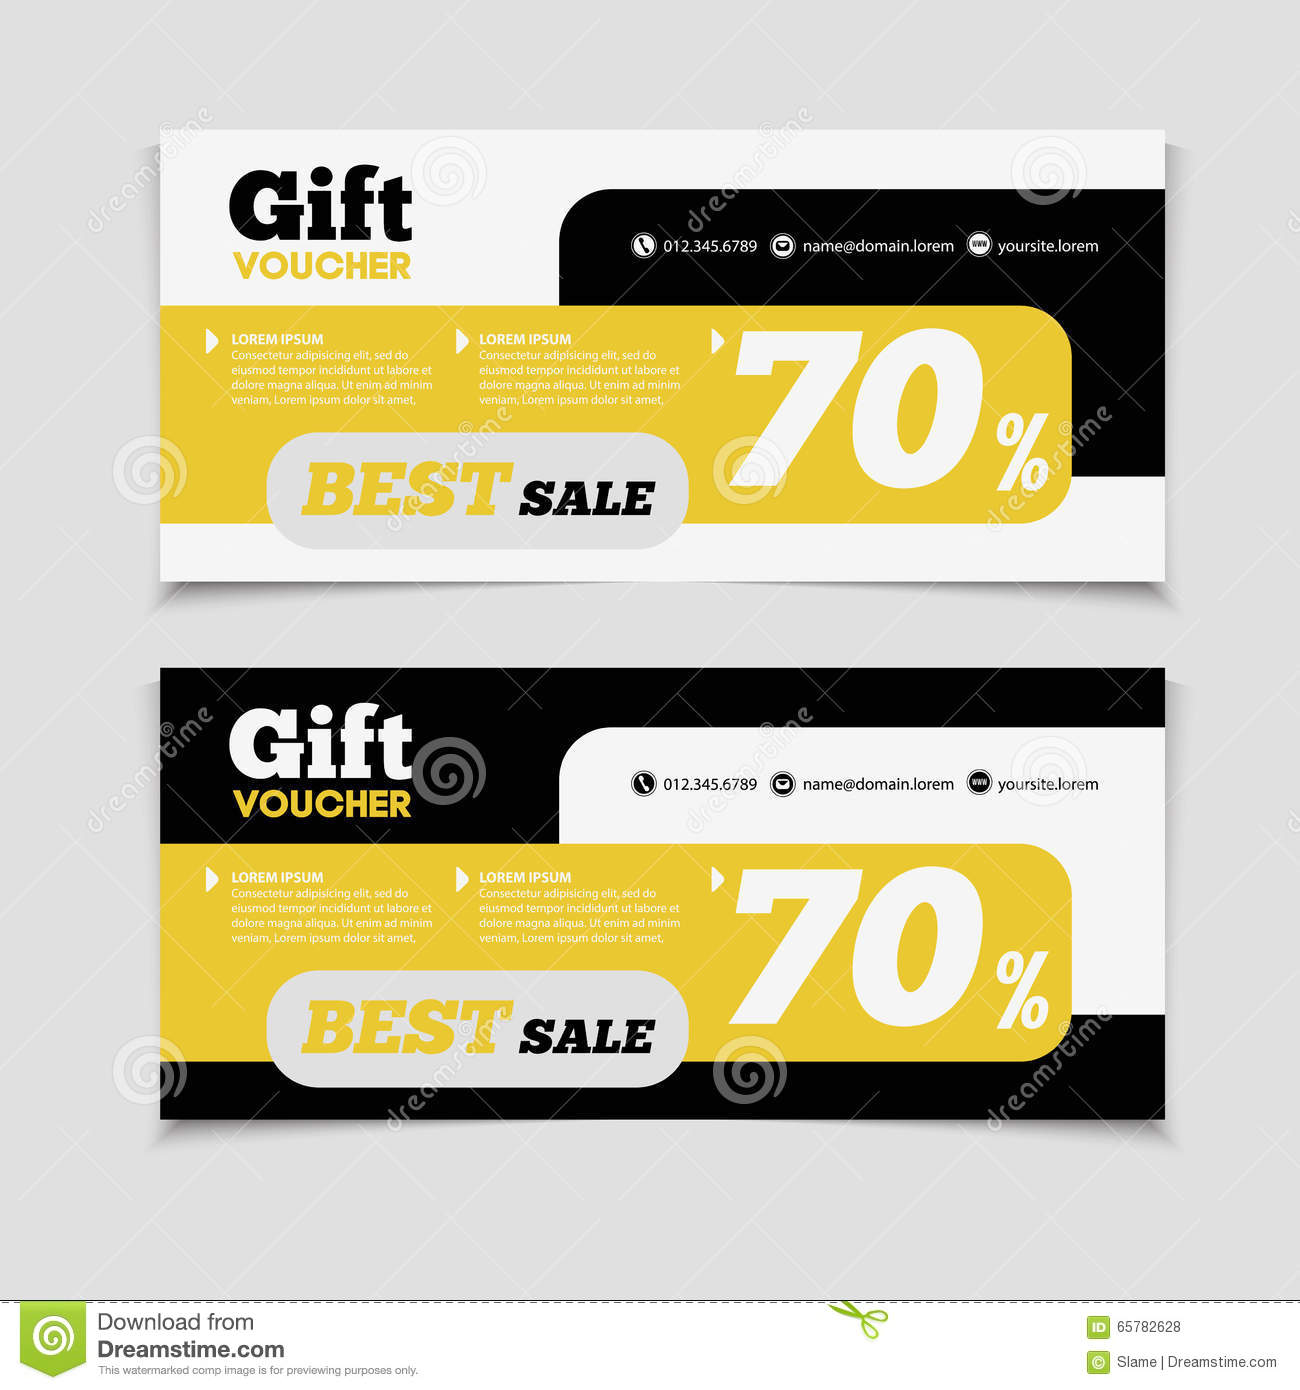 Gift voucher template with amount of discount and contact inform royalty free vector download gift voucher template xflitez Image collections